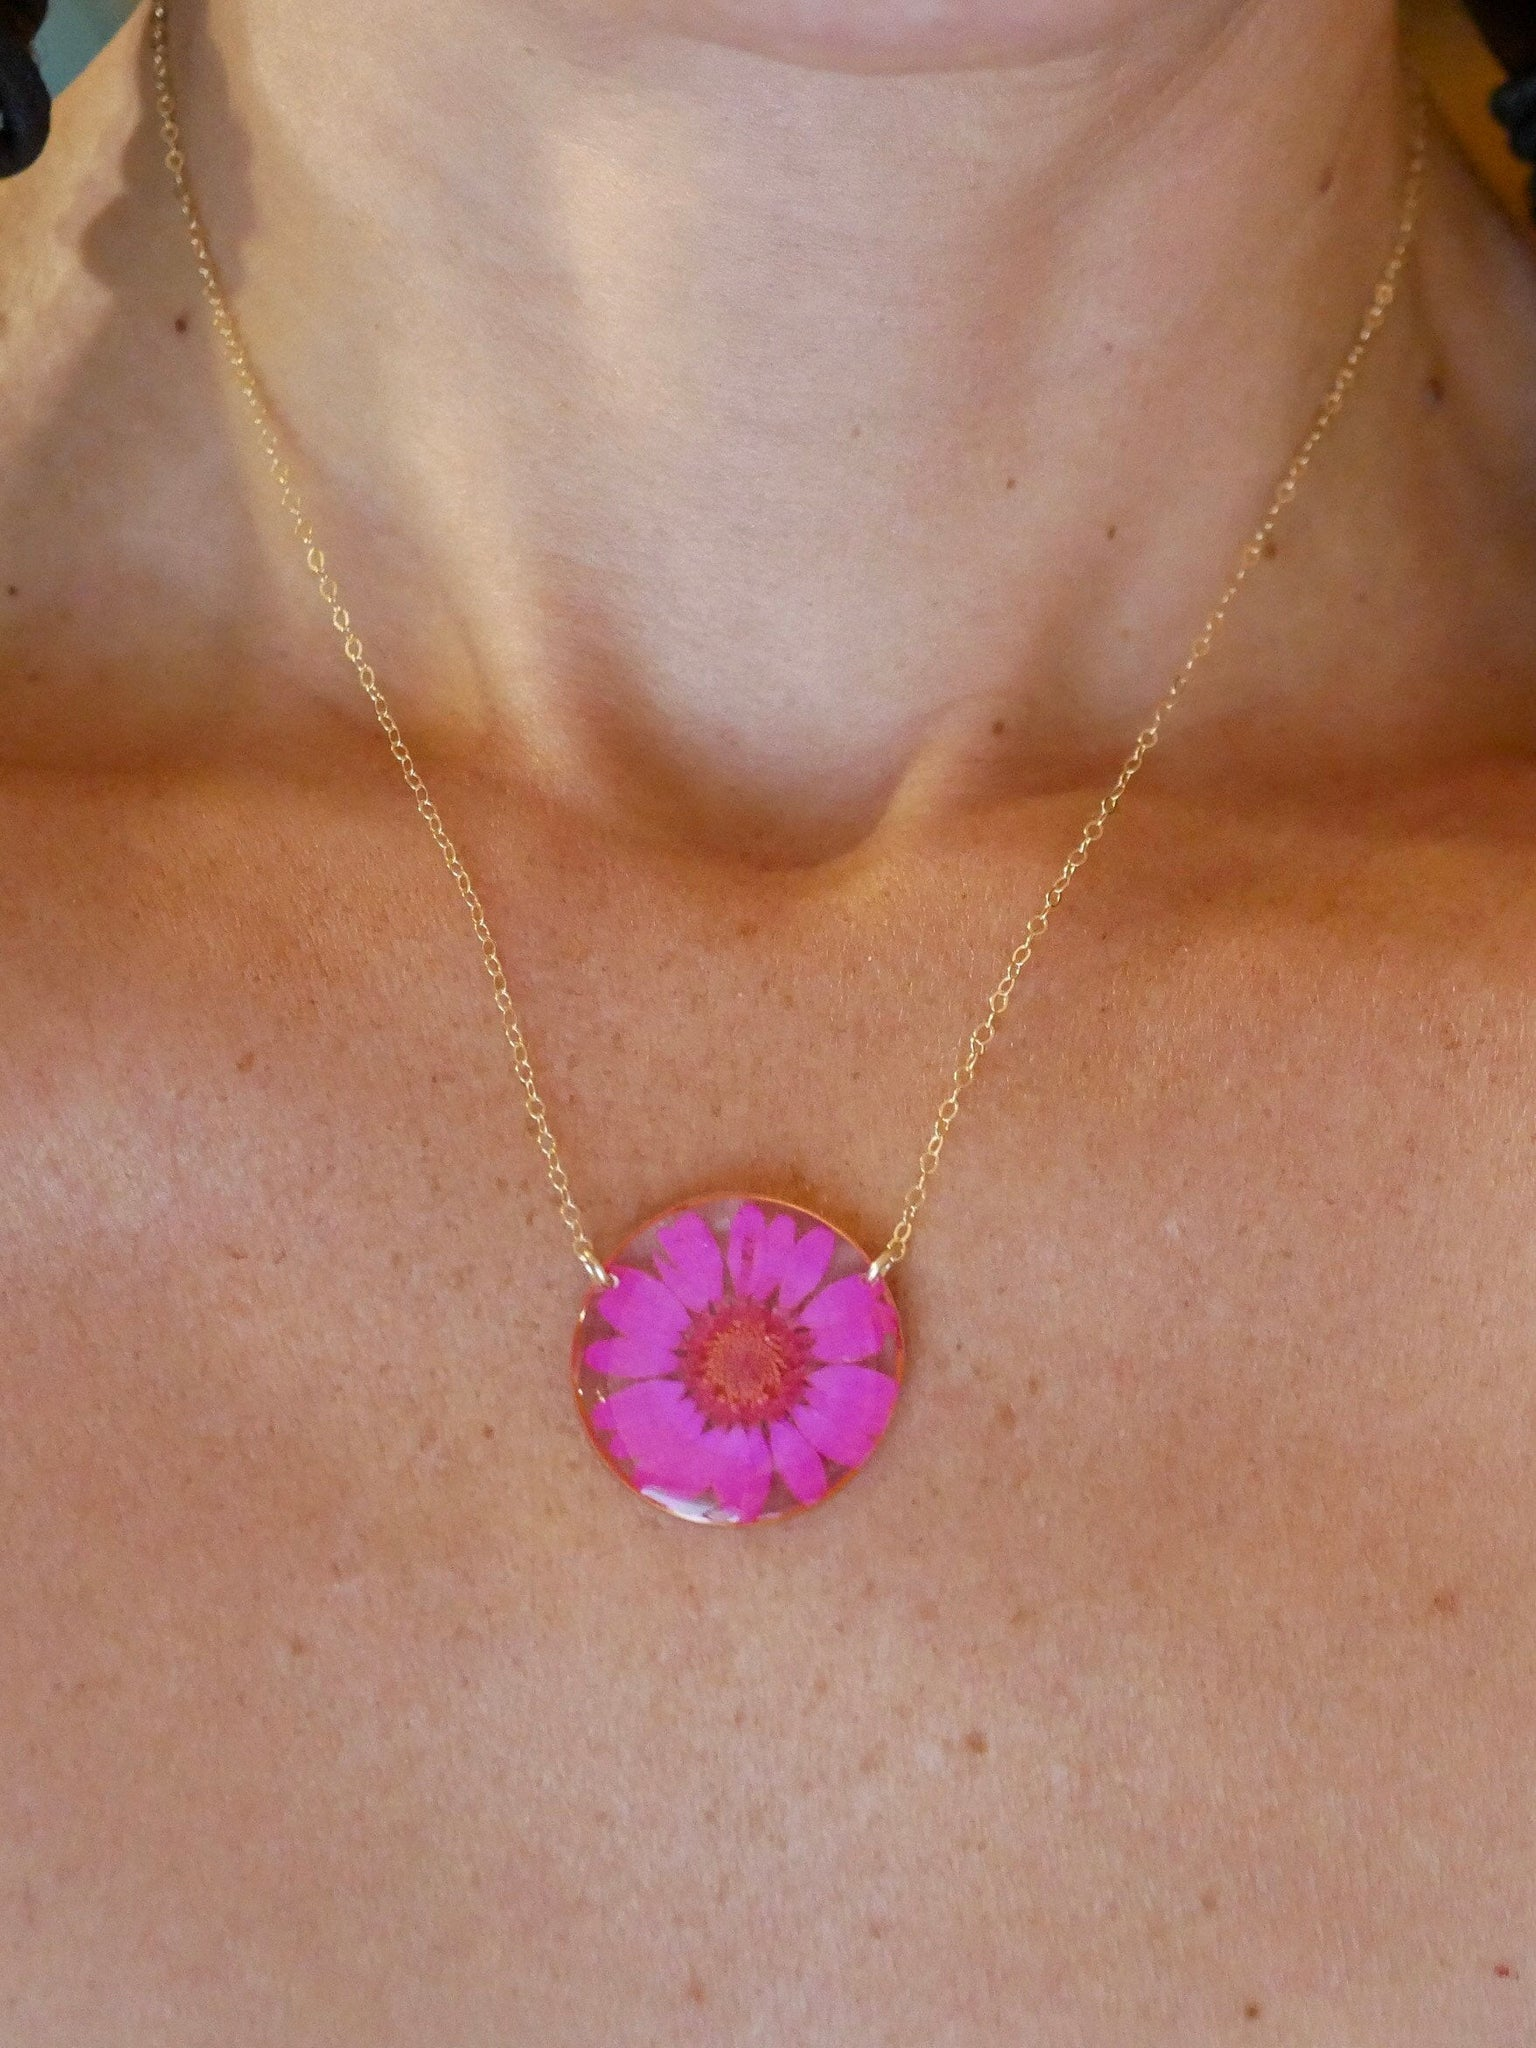 Pink Chrysanthemum necklace